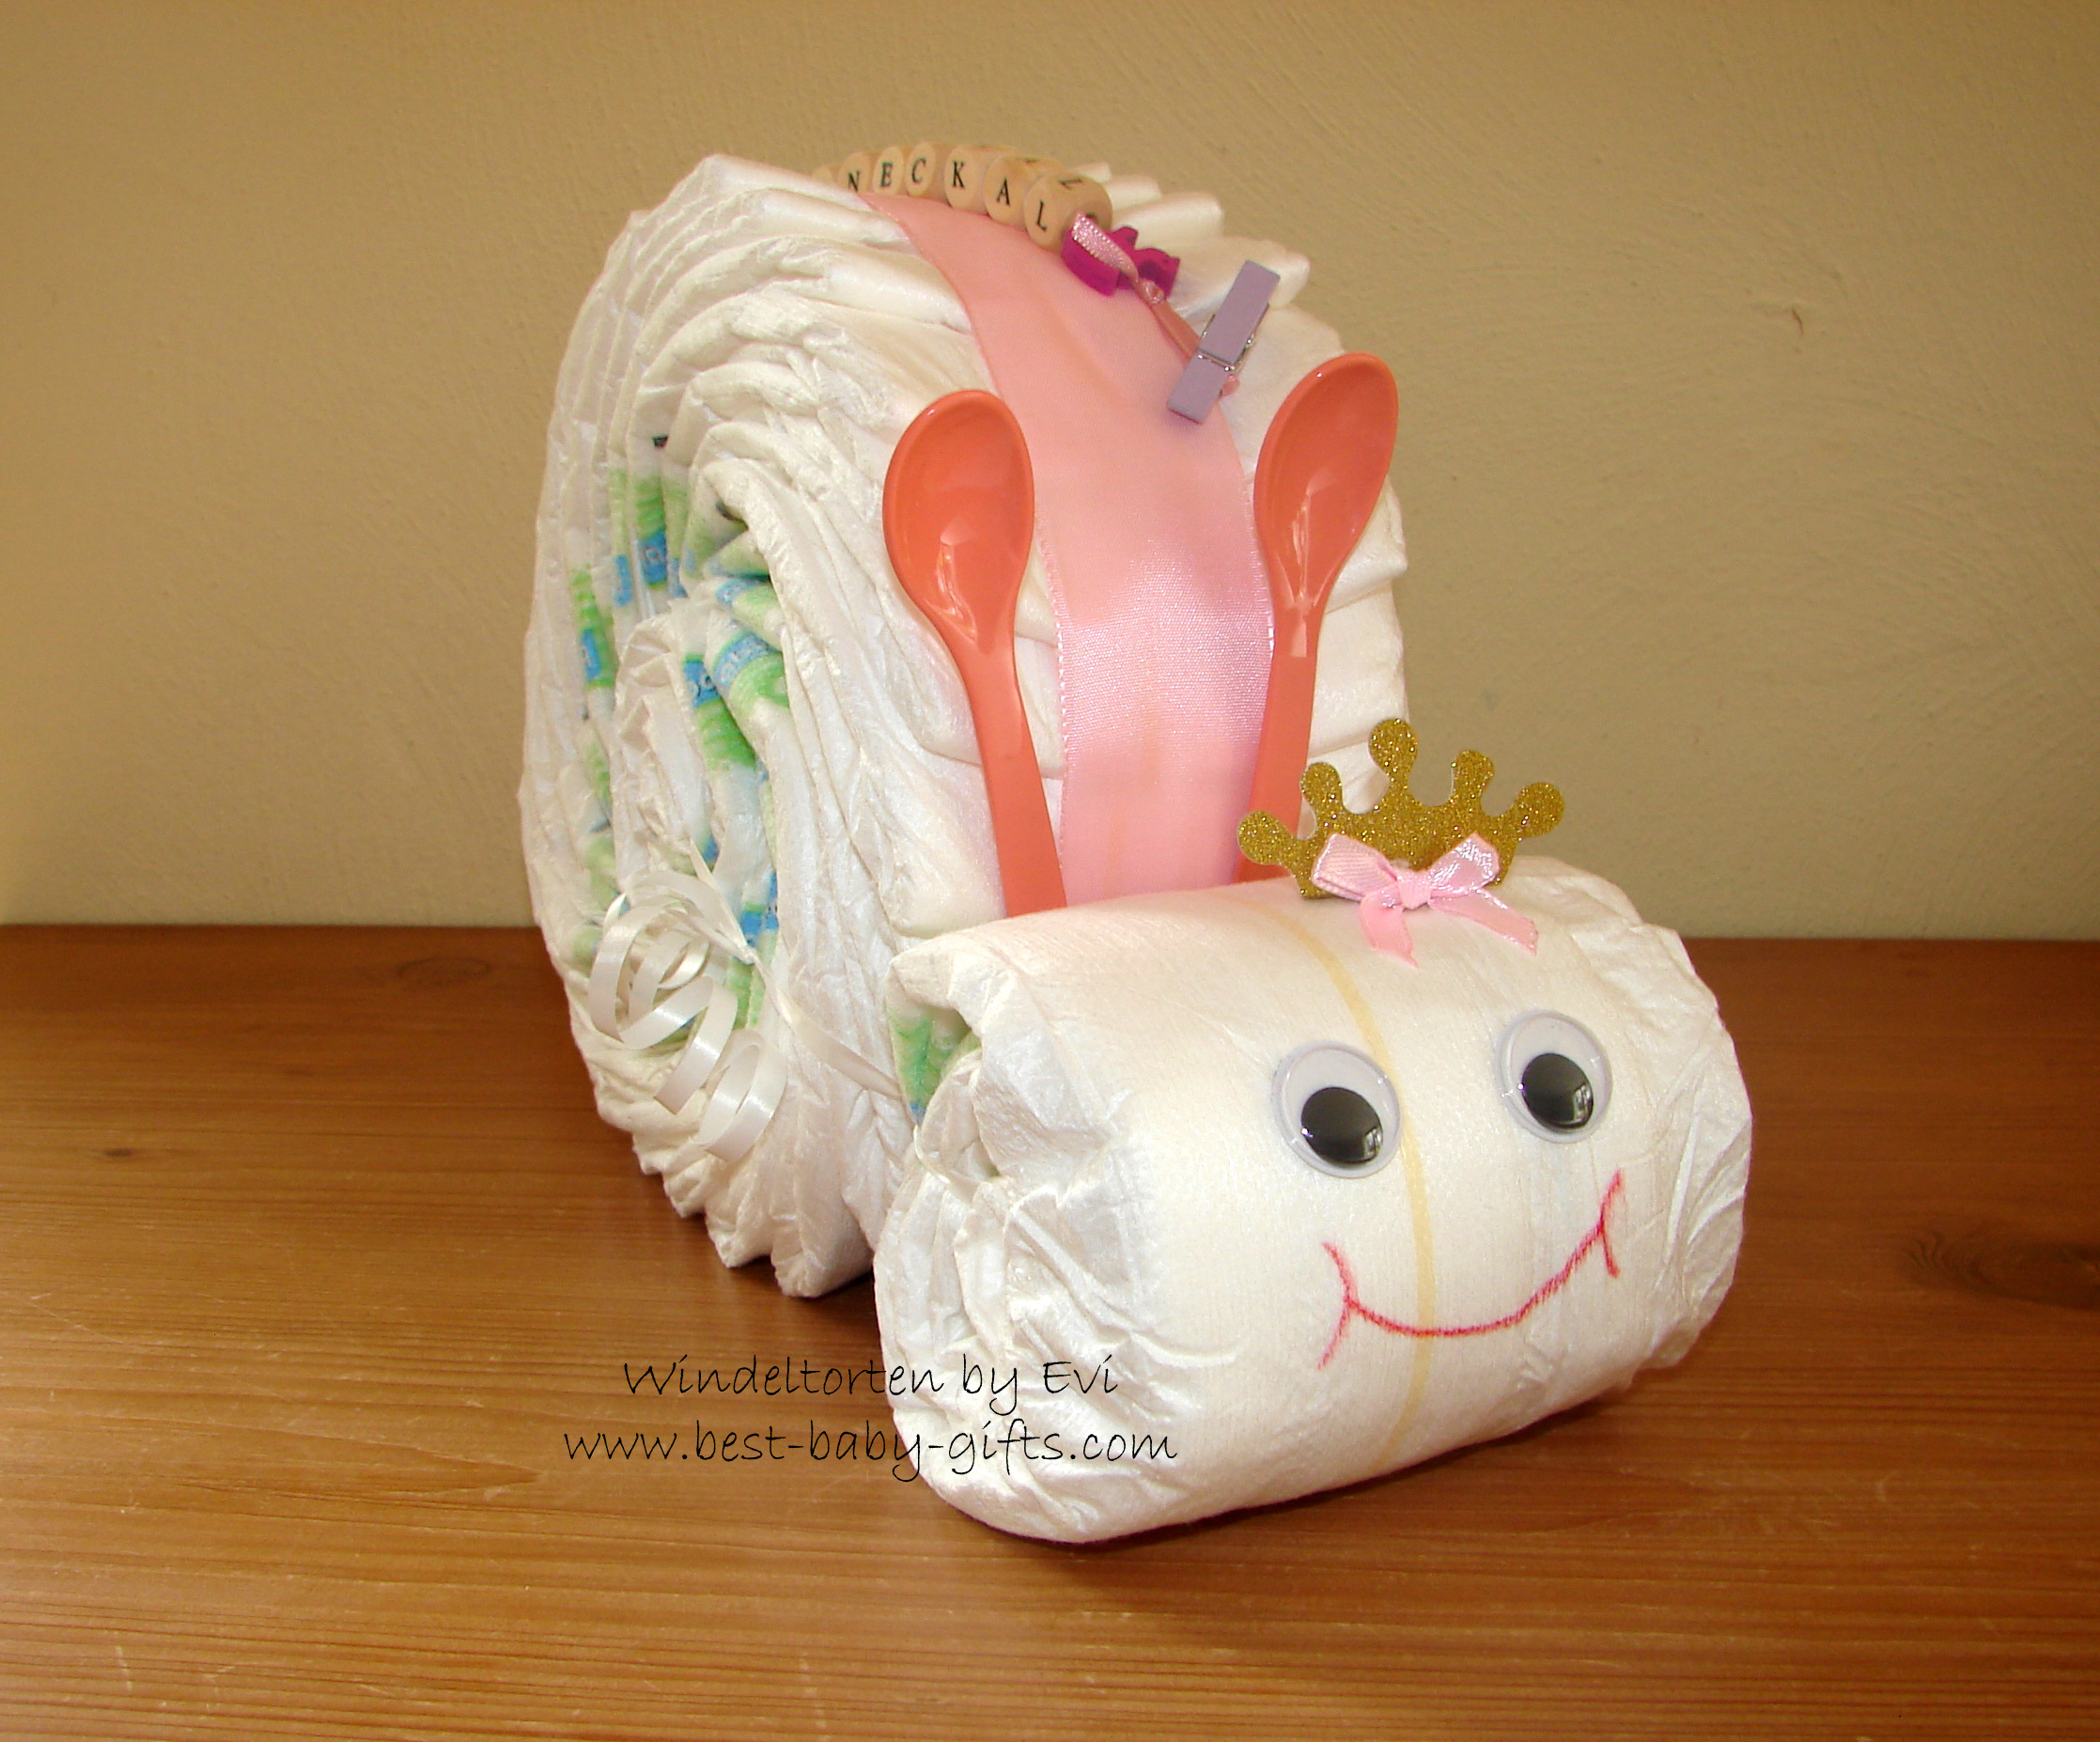 a pink diaper snail for a girl with a wooden letter chain for personalization